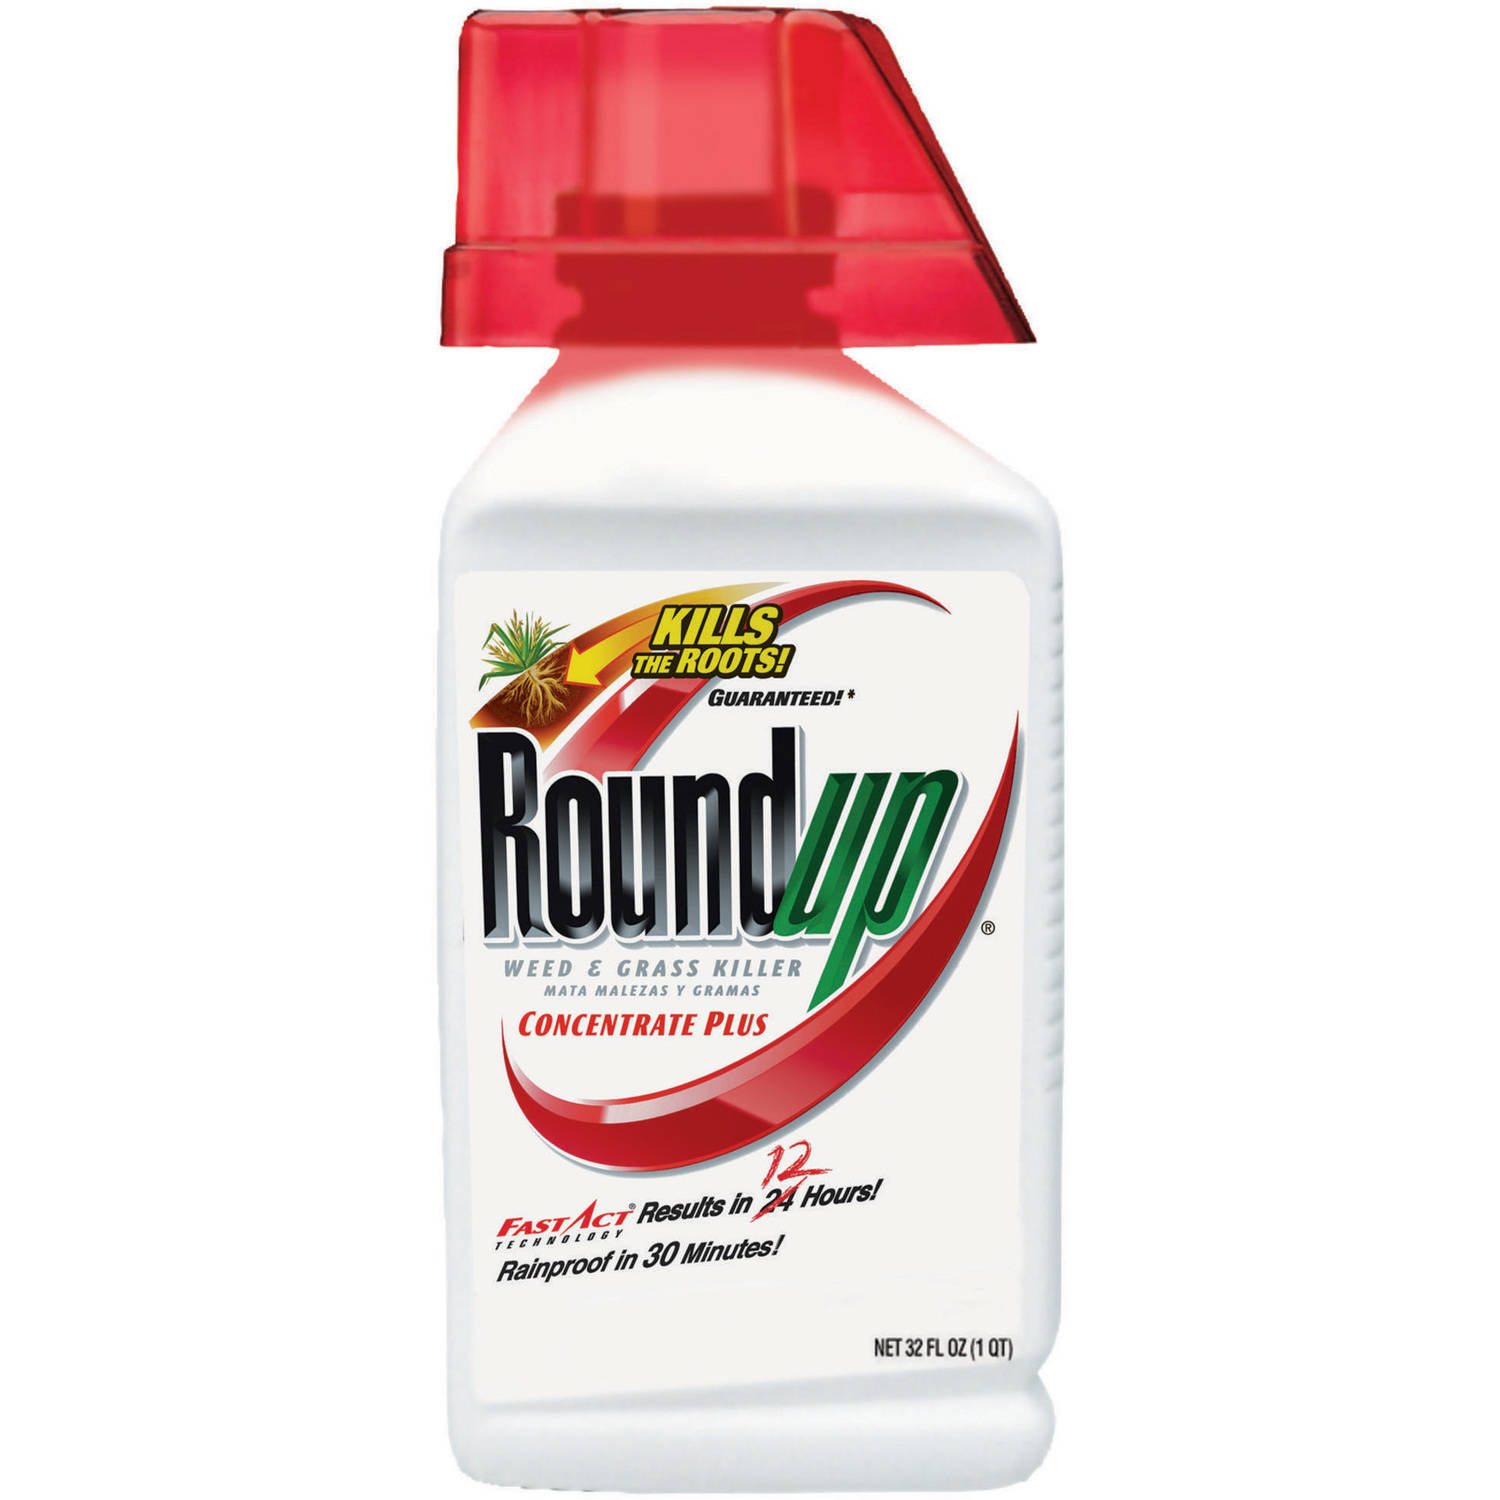 Roundup Weed & Grass Killer Concentrate Plus, 32 oz